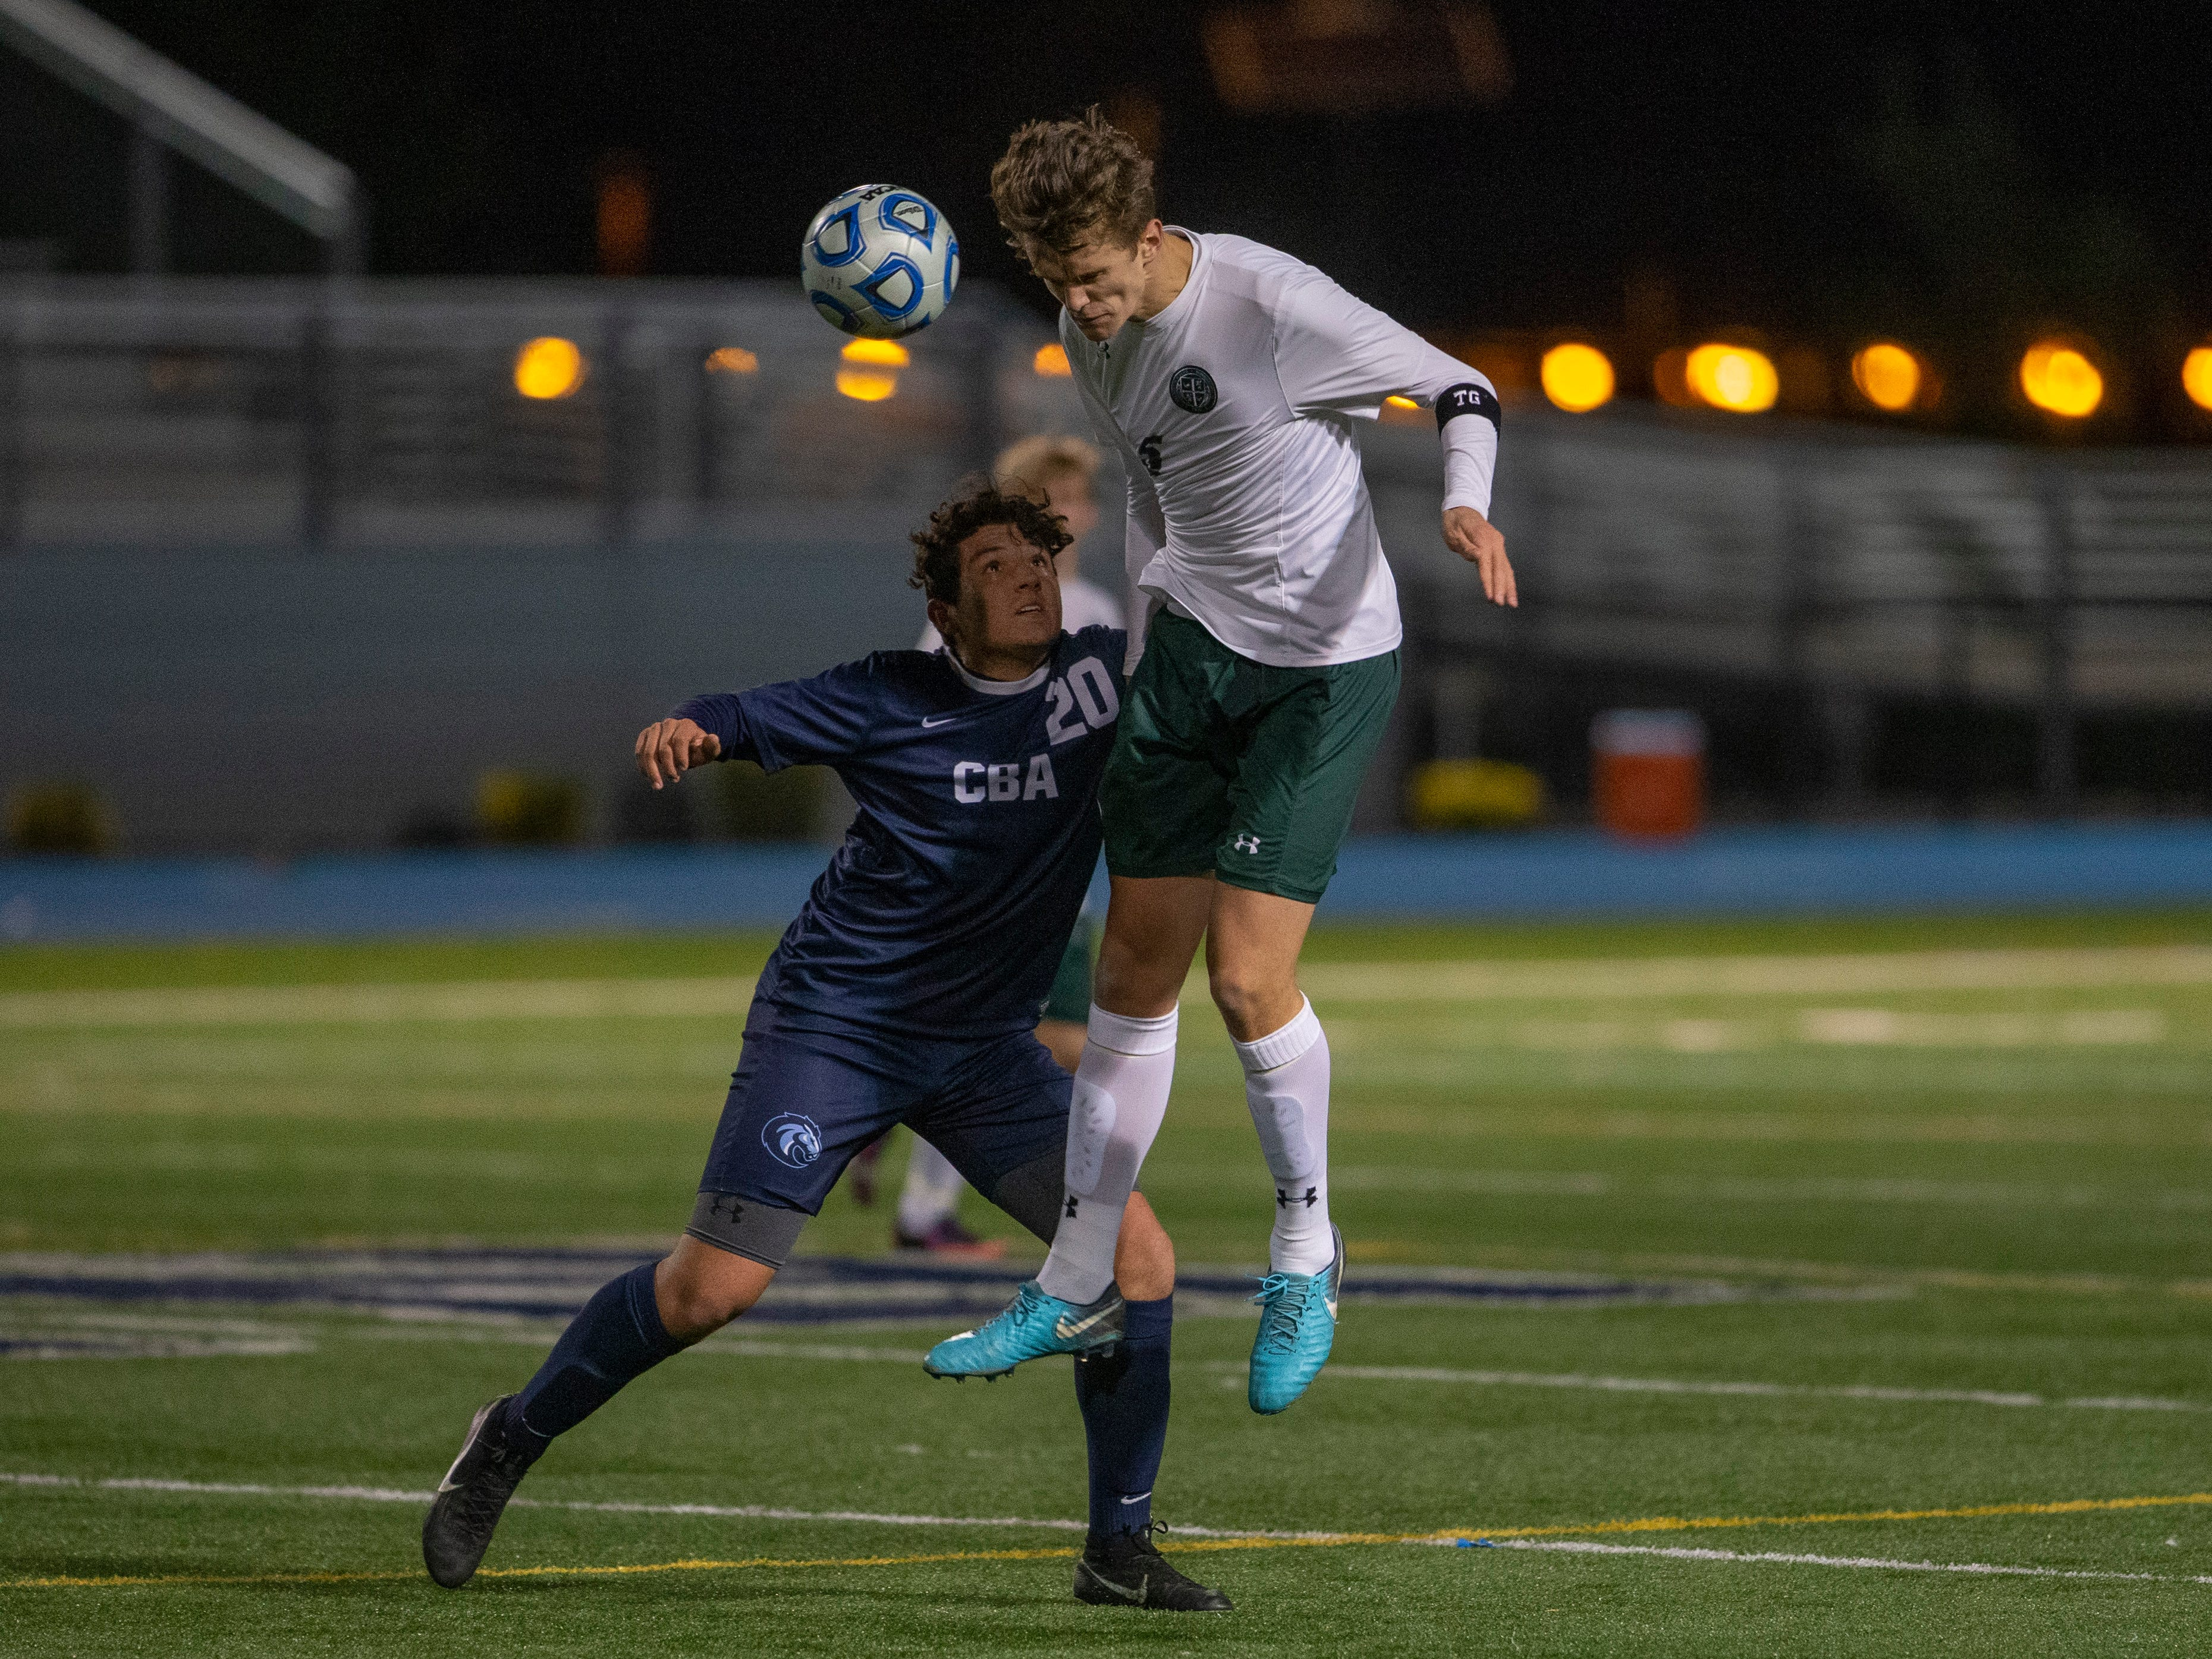 Christian Brothers overcomes Delbarton in NJSIAA Non-Public A final